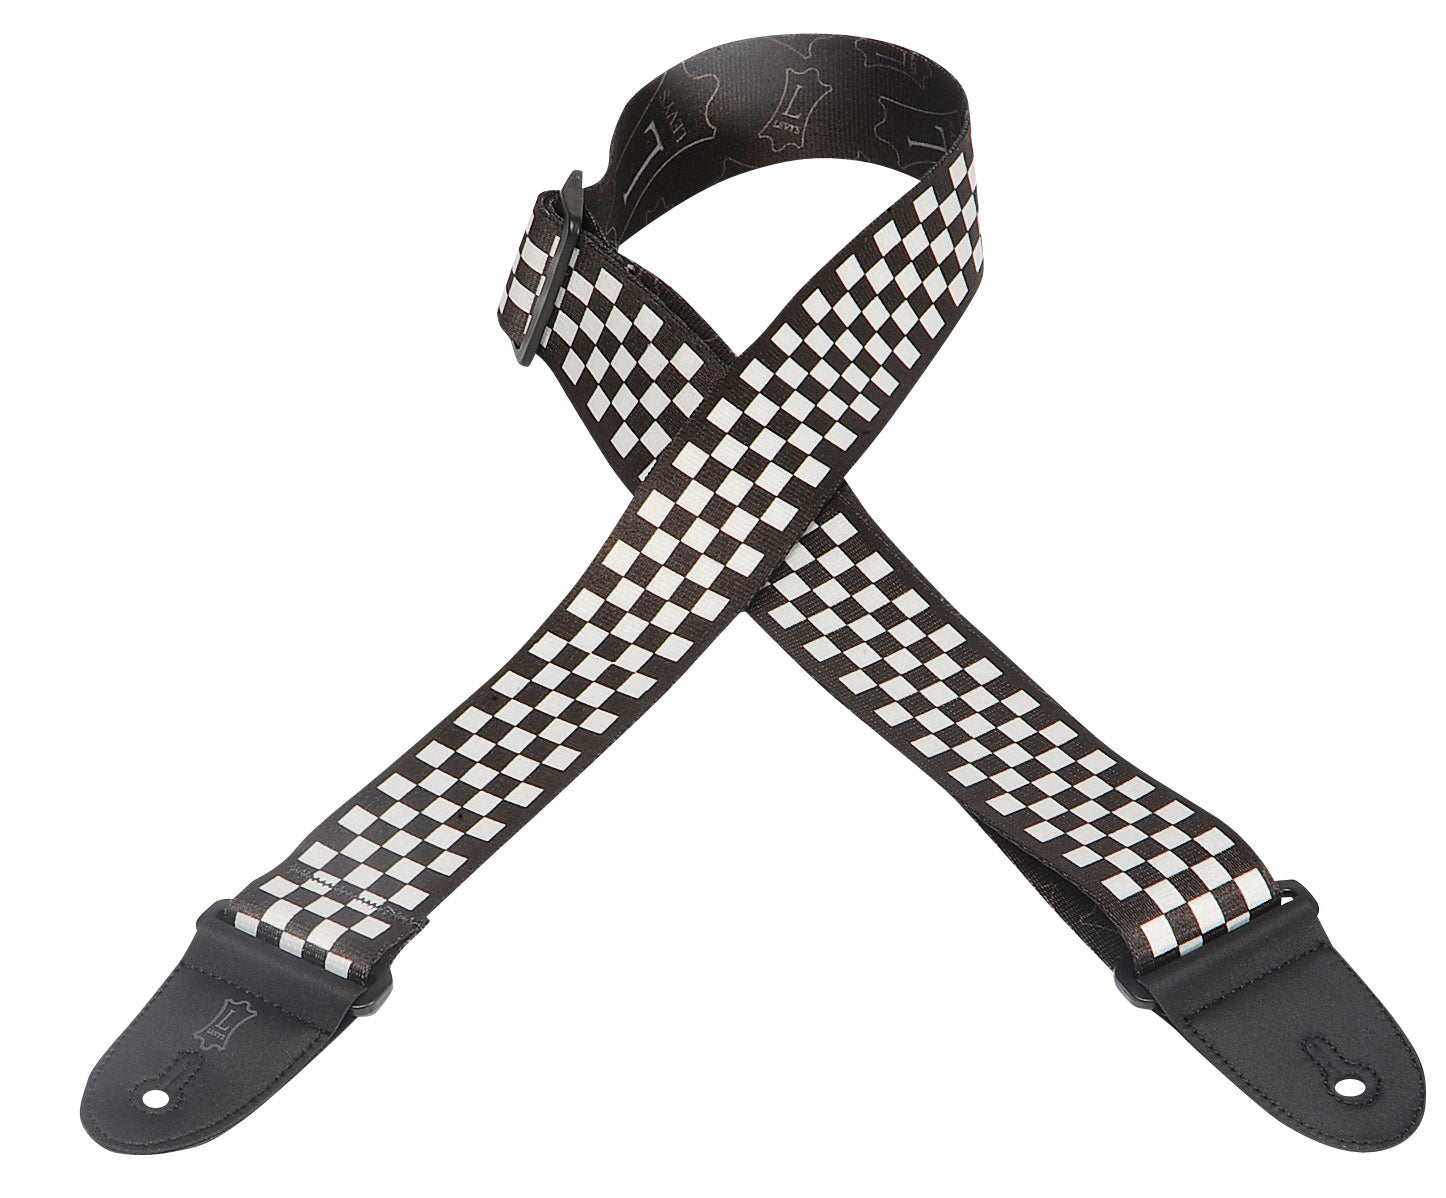 "LEVY'S 2"" POLYESTER GUITAR STRAP WITH PRINTED DESIGN BLACK/WHITE CHECK"